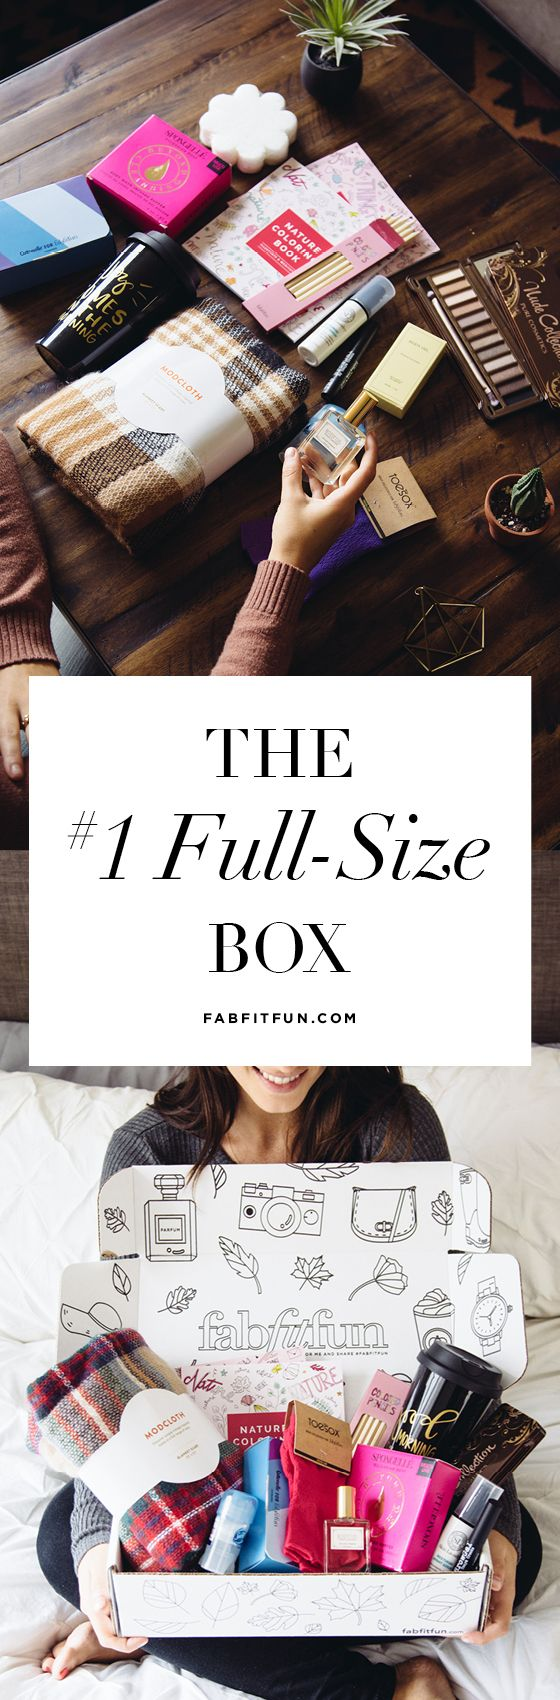 Treating yourself doesn't have break the bank. Say hello to FabFitFun and for just $39.99 you'll get a huge box stuffed with $200+ of full-size, luxury beauty, fashion, and wellness finds. Our boxes are delivered once a season. FREE Shipping. Use code JENNYM for $10 off your first box. #ad